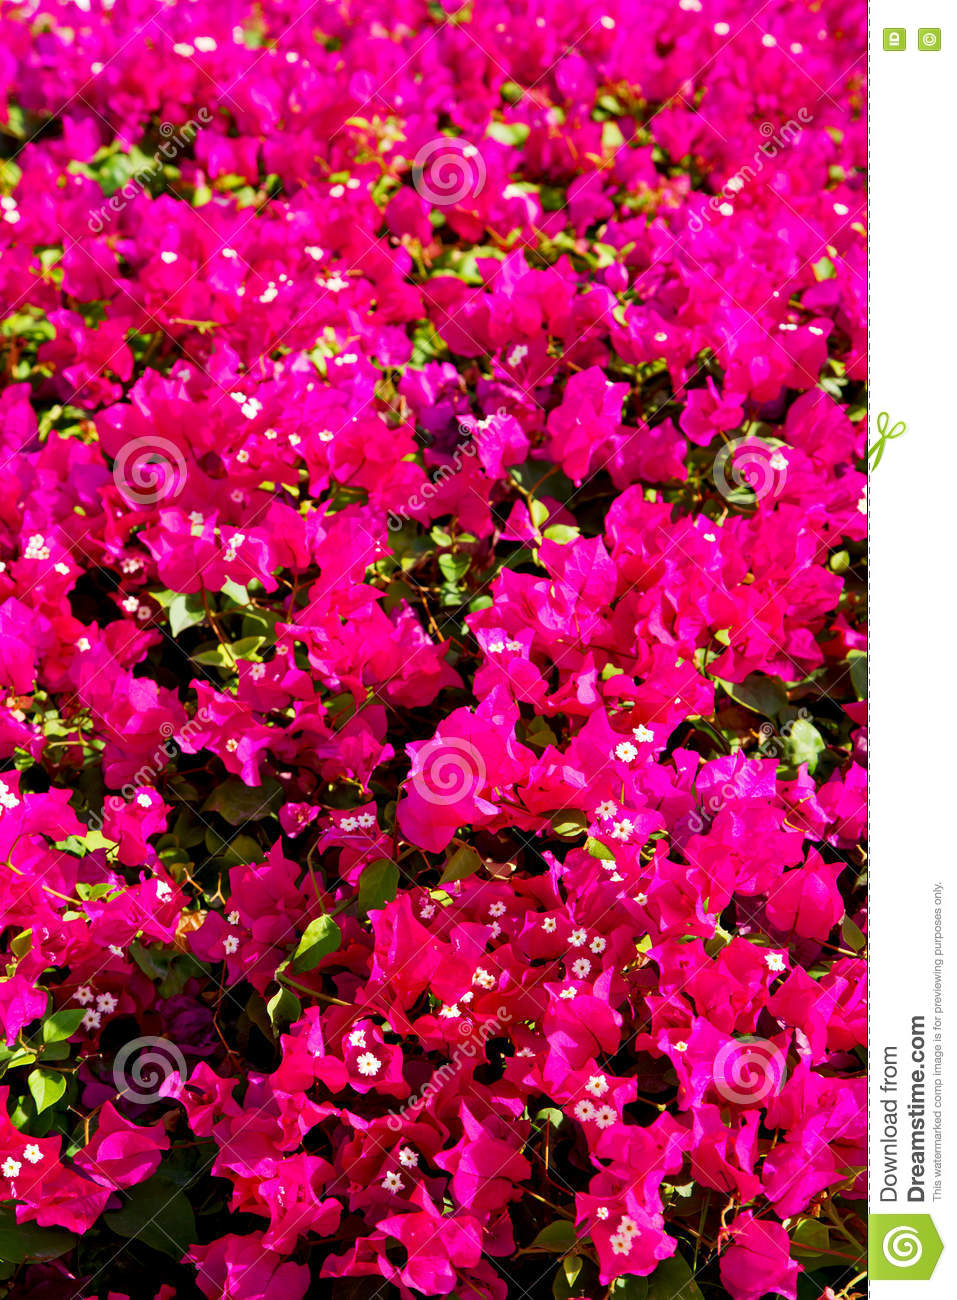 In Oman Flowers And Garden The Spring Colors Stock Photo - Image of ...